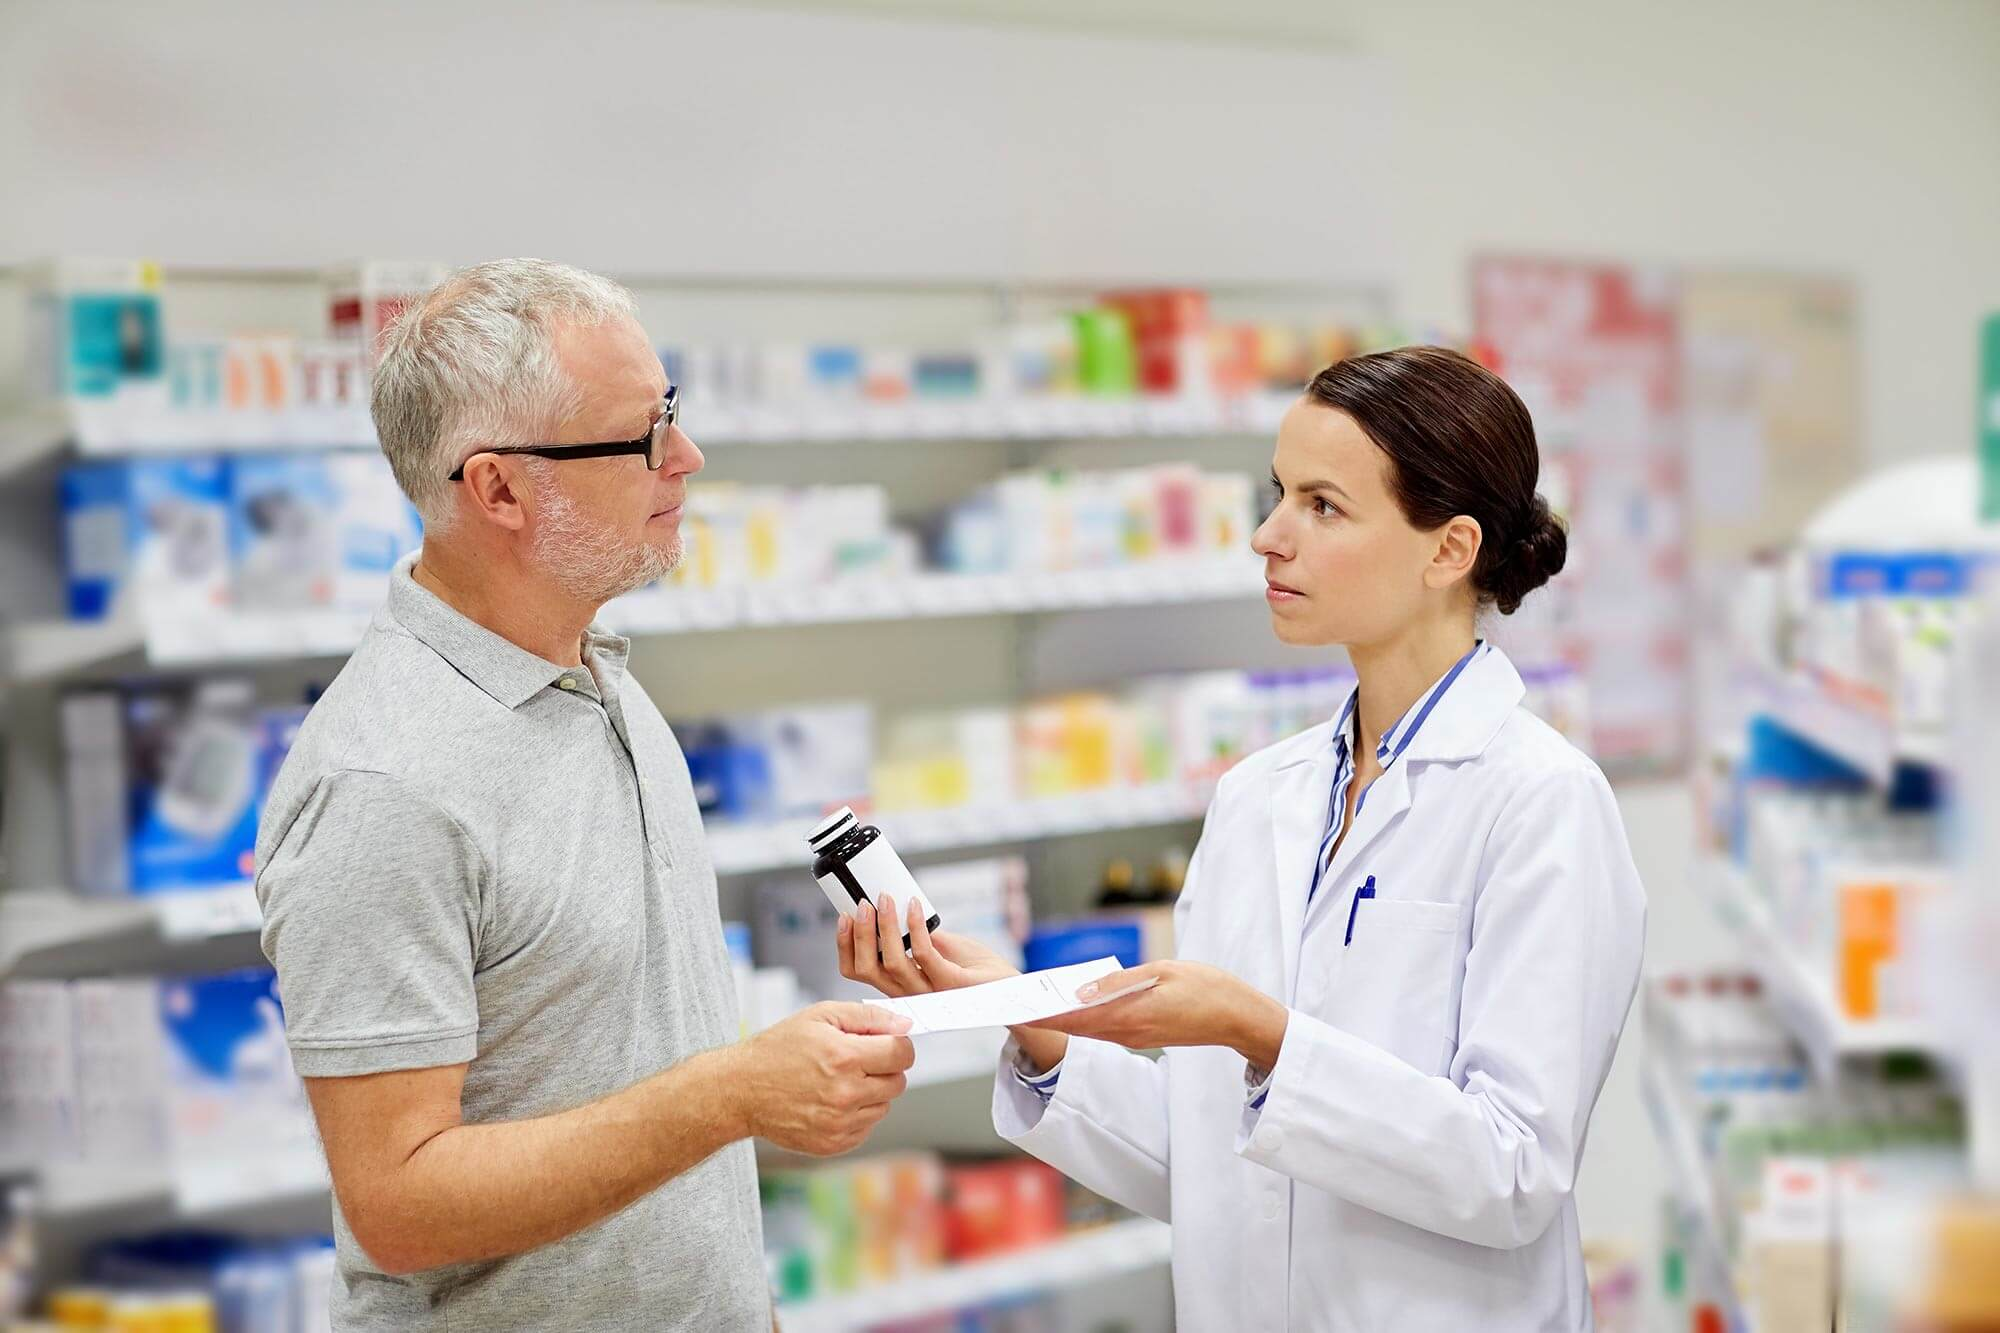 Senior citizen buying medications from a pharmacy